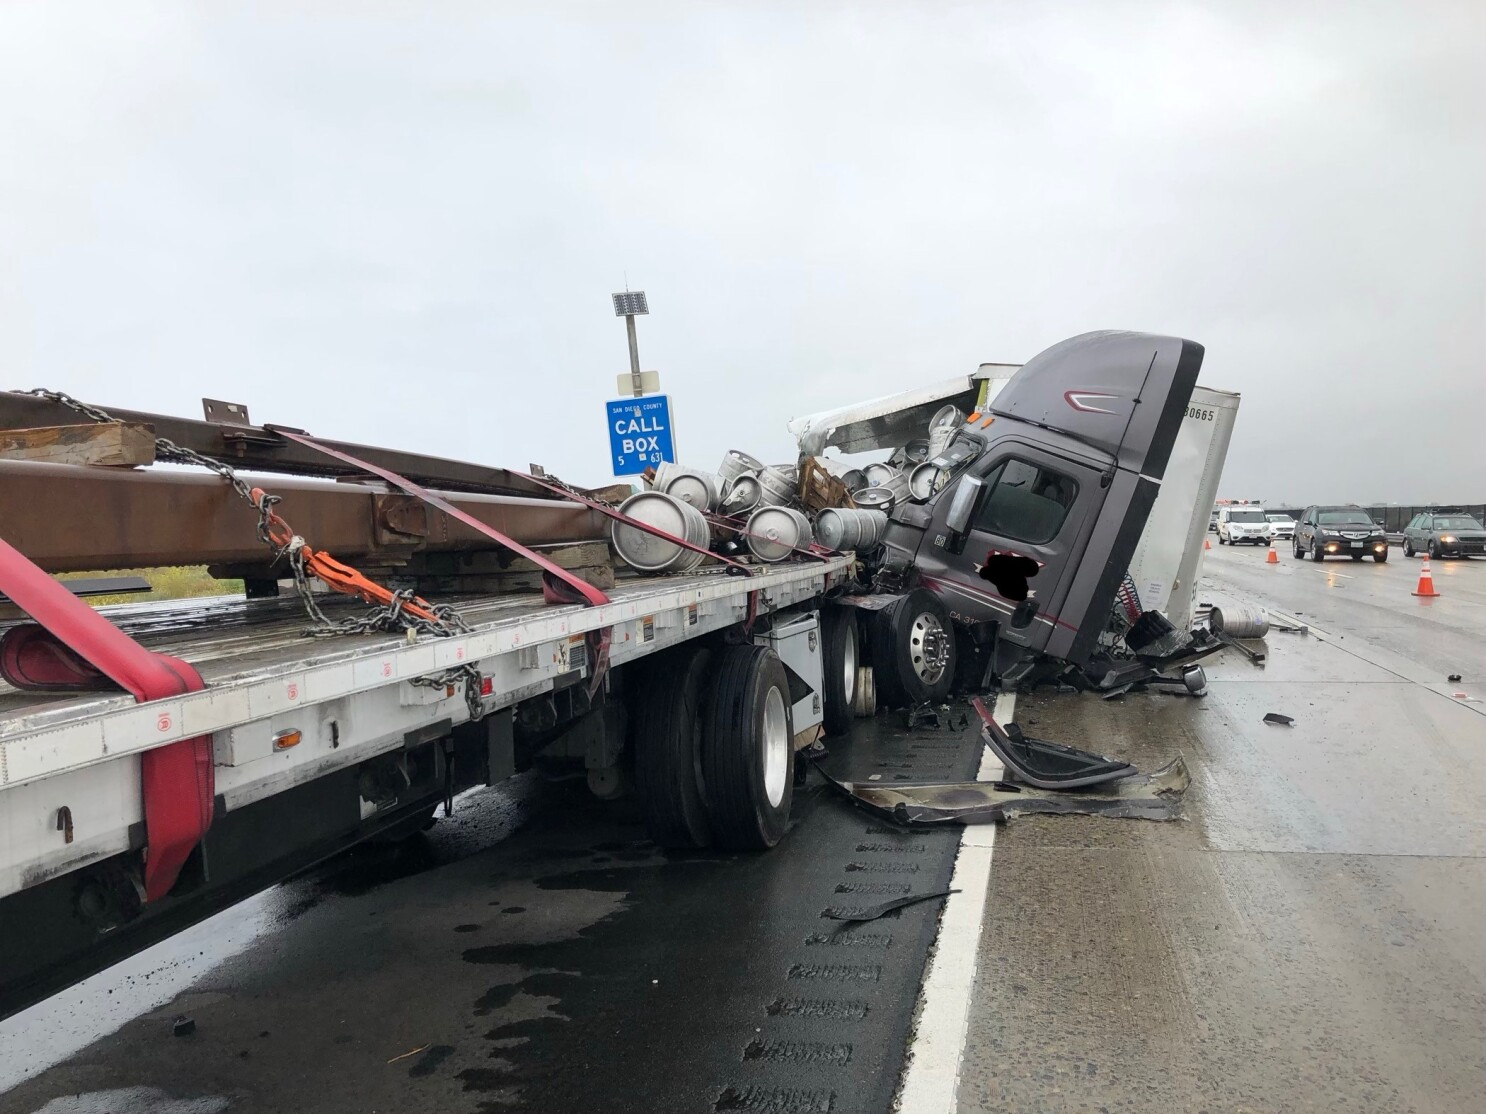 Traffic slow on south I-5 near Orange County line as lanes reopen